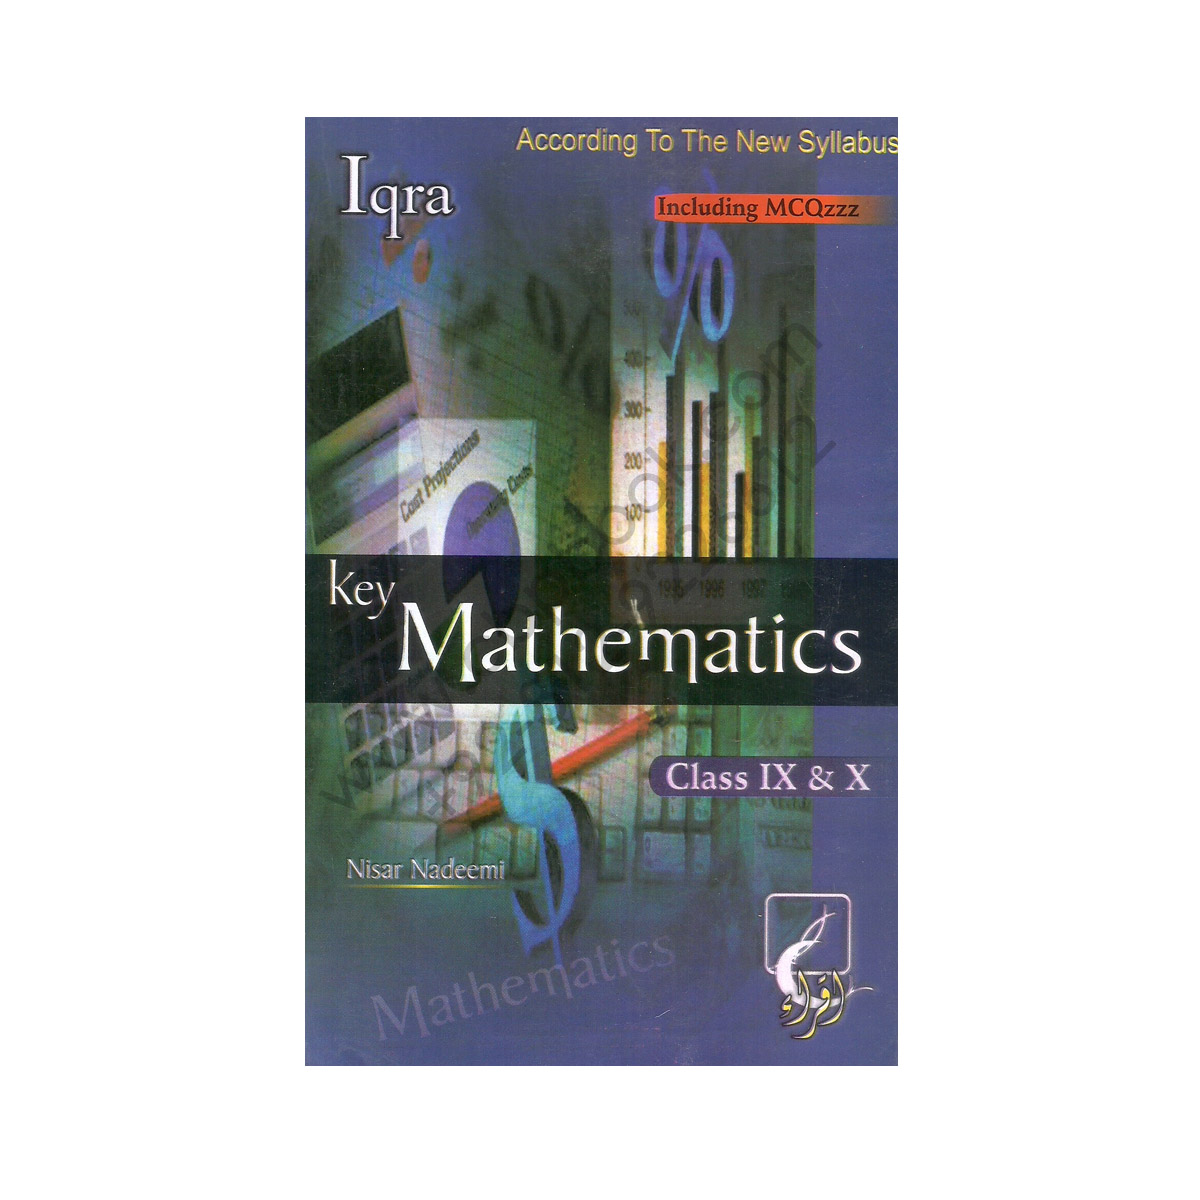 Key Mathematics Including MCQs For Class IX-X By Nisar Nadeemi - IQRA